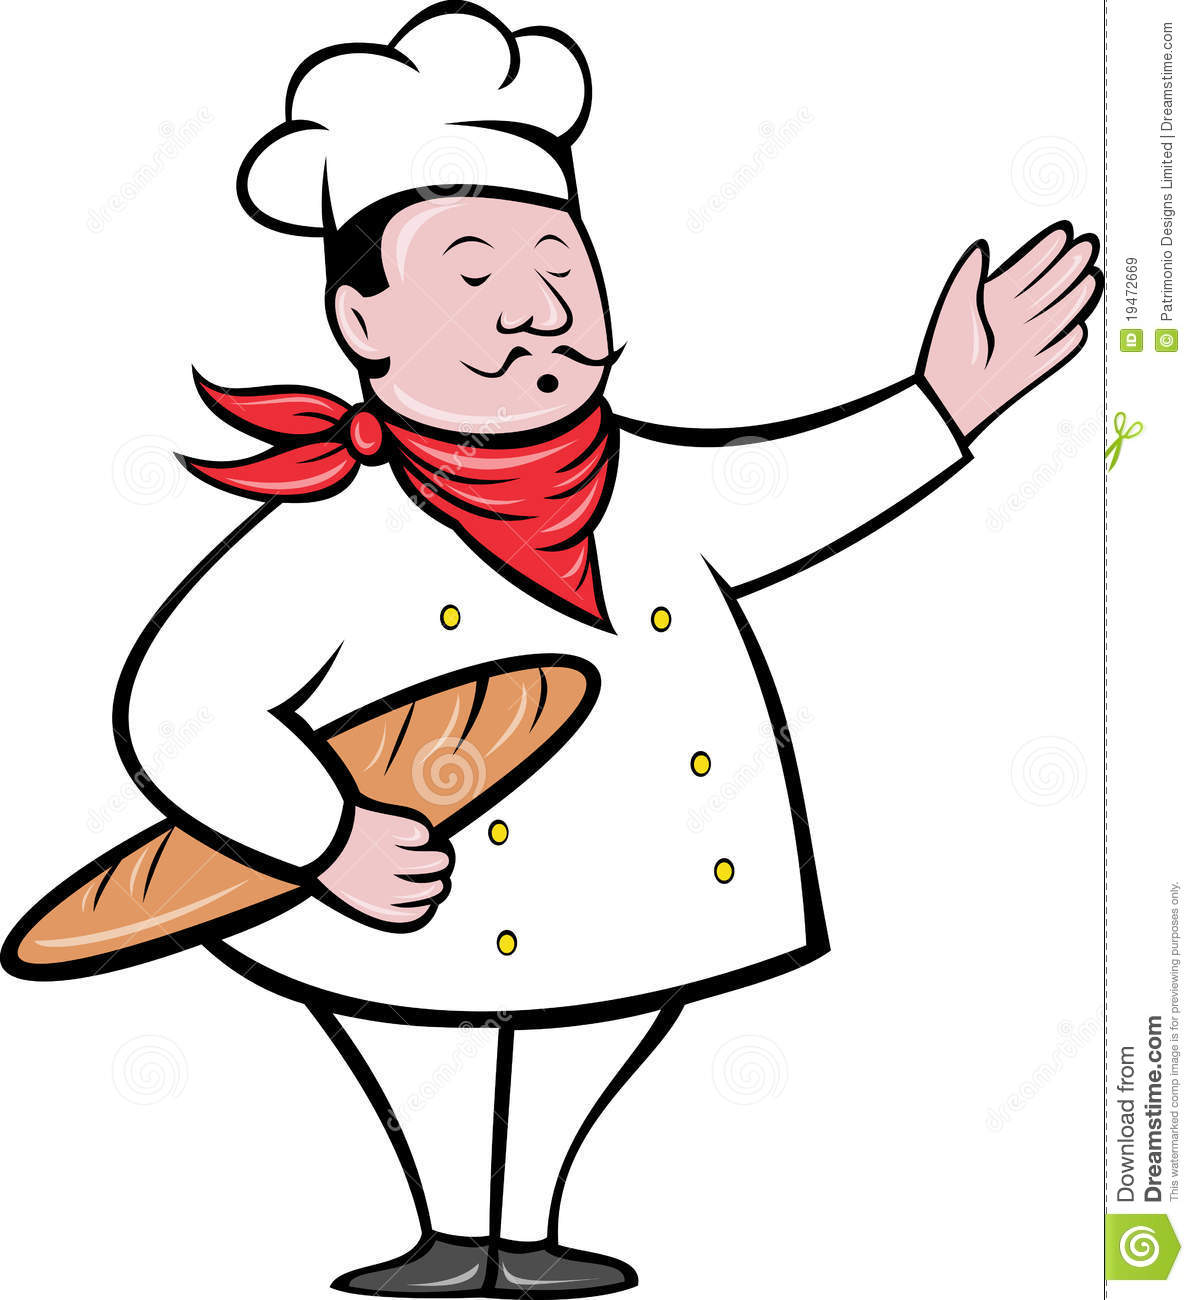 chef baker with bread loaf stock illustration illustration of rh dreamstime com french chef clipart Chef Border Clip Art